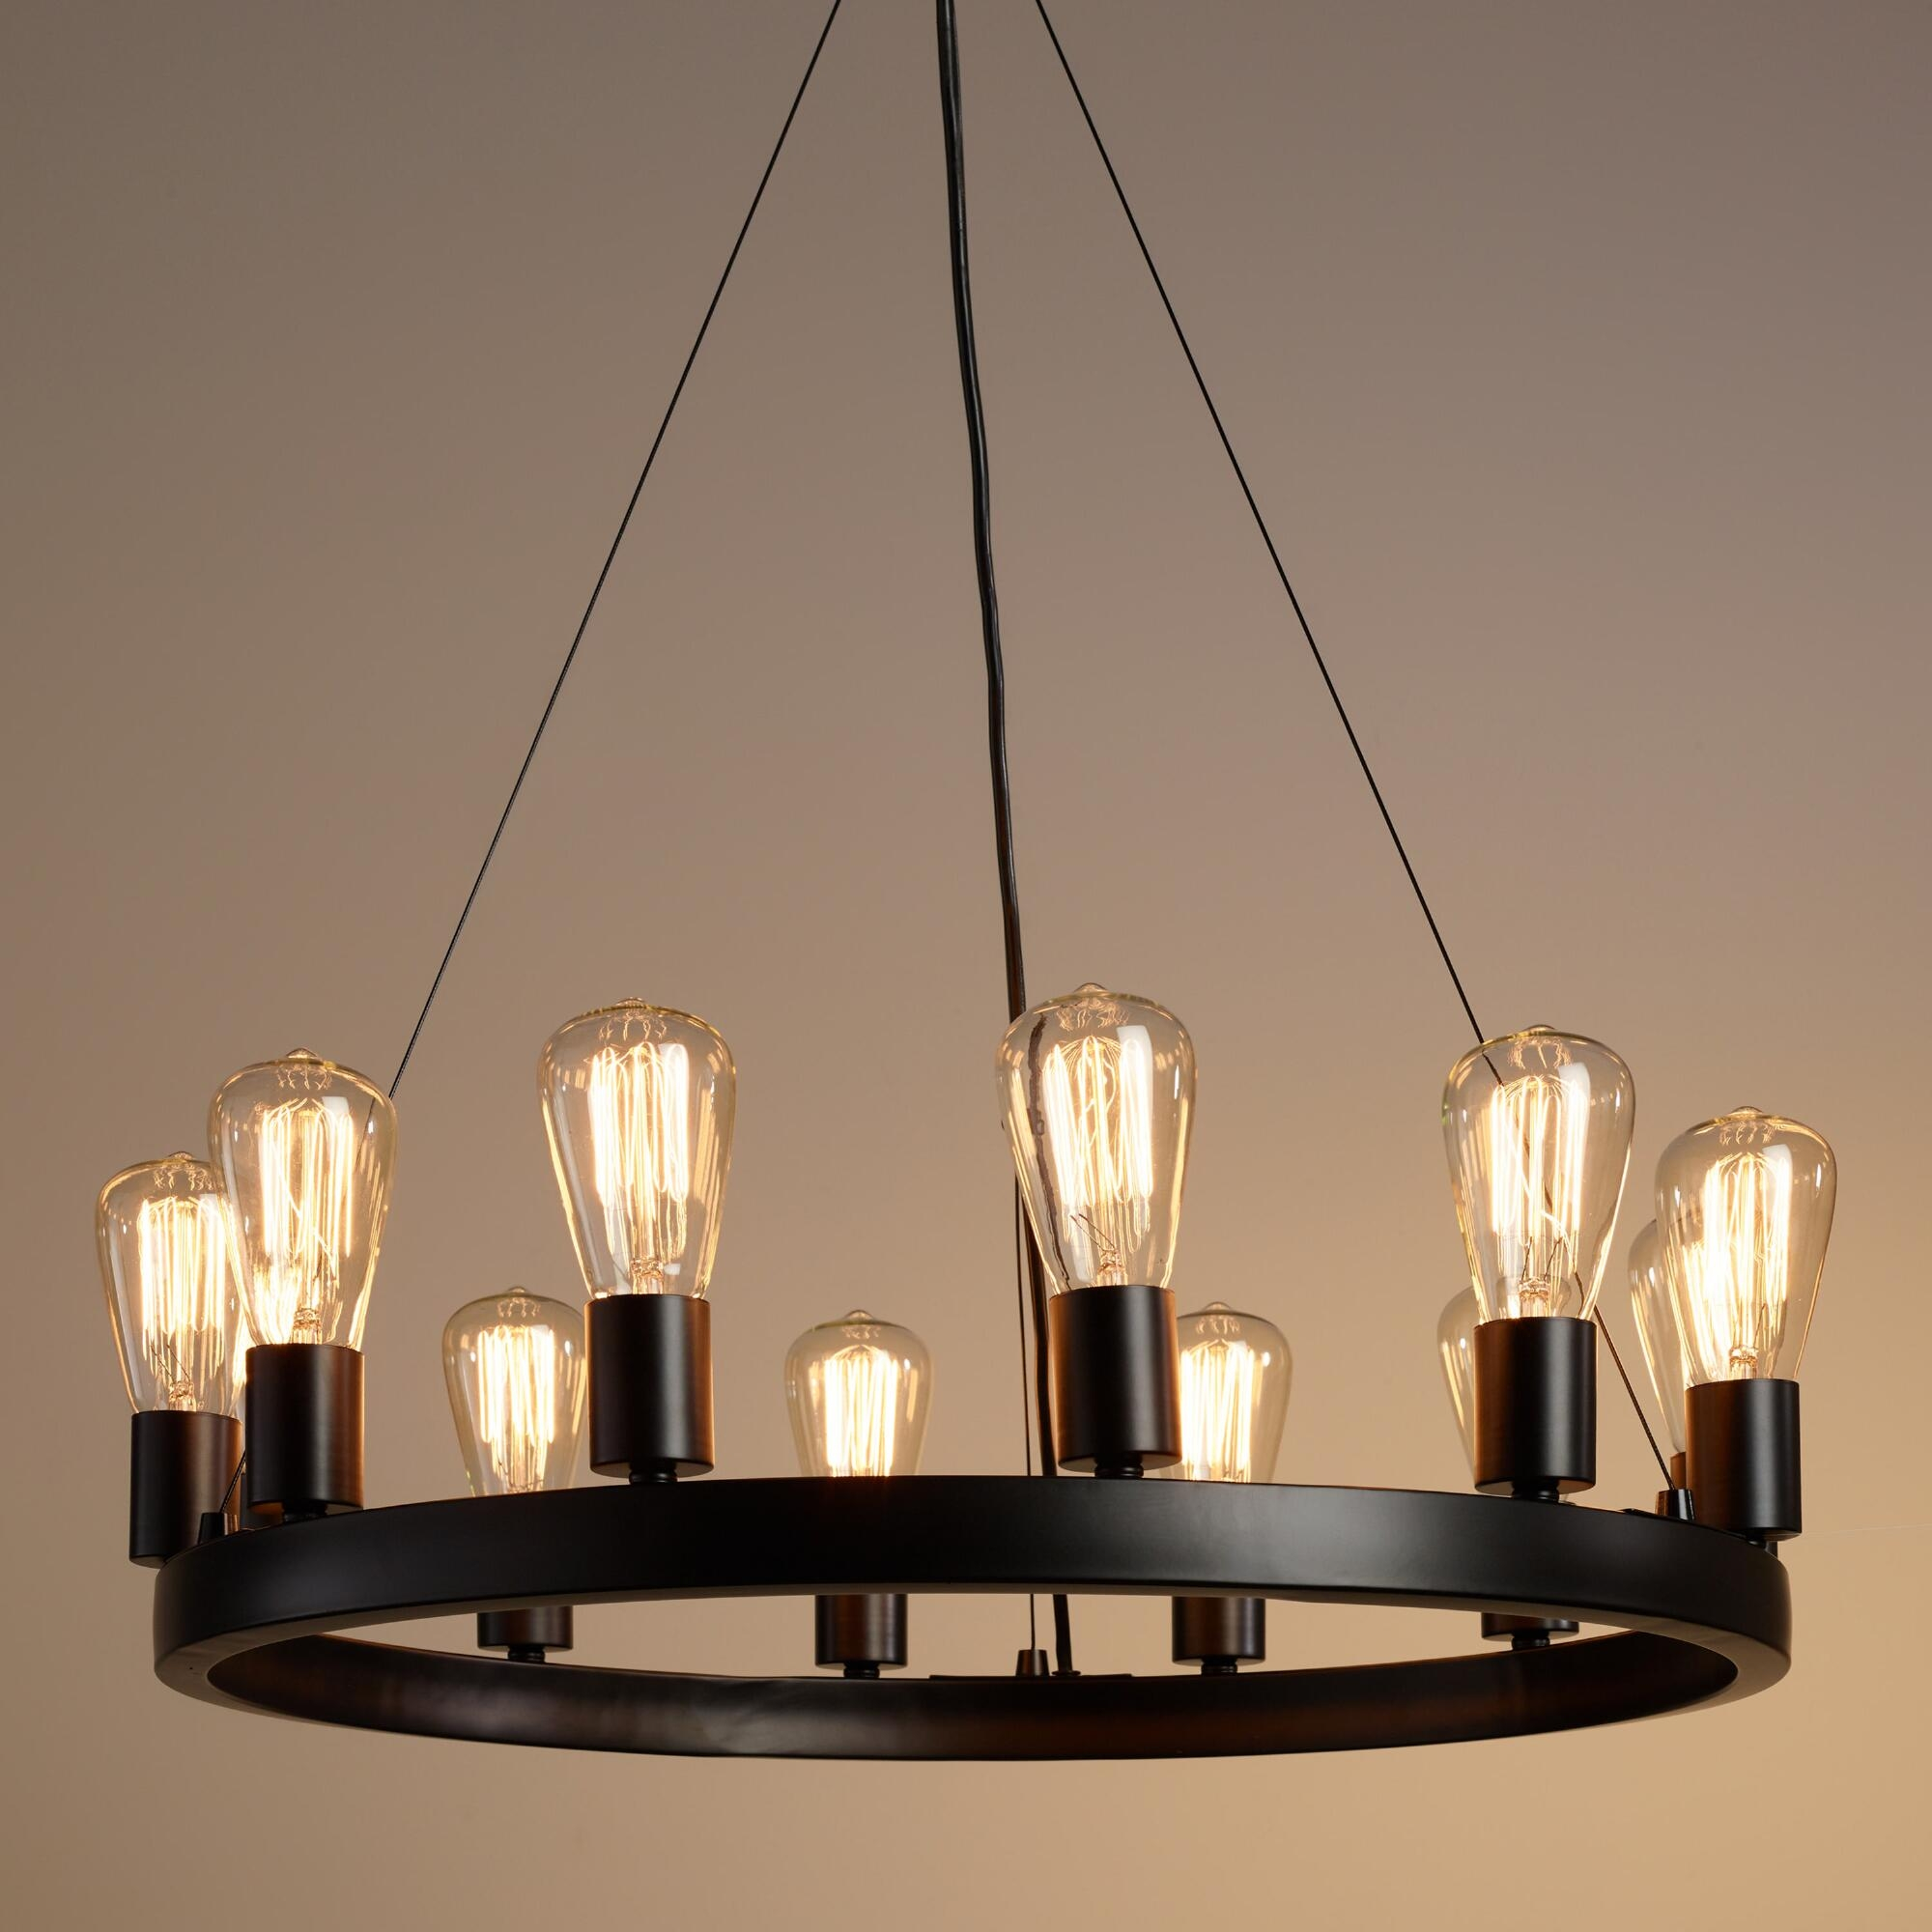 Round 12 Light Edison Bulb Chandelier Edison Bulbs Rustic And Regarding Vintage Style Chandeliers (Image 13 of 15)